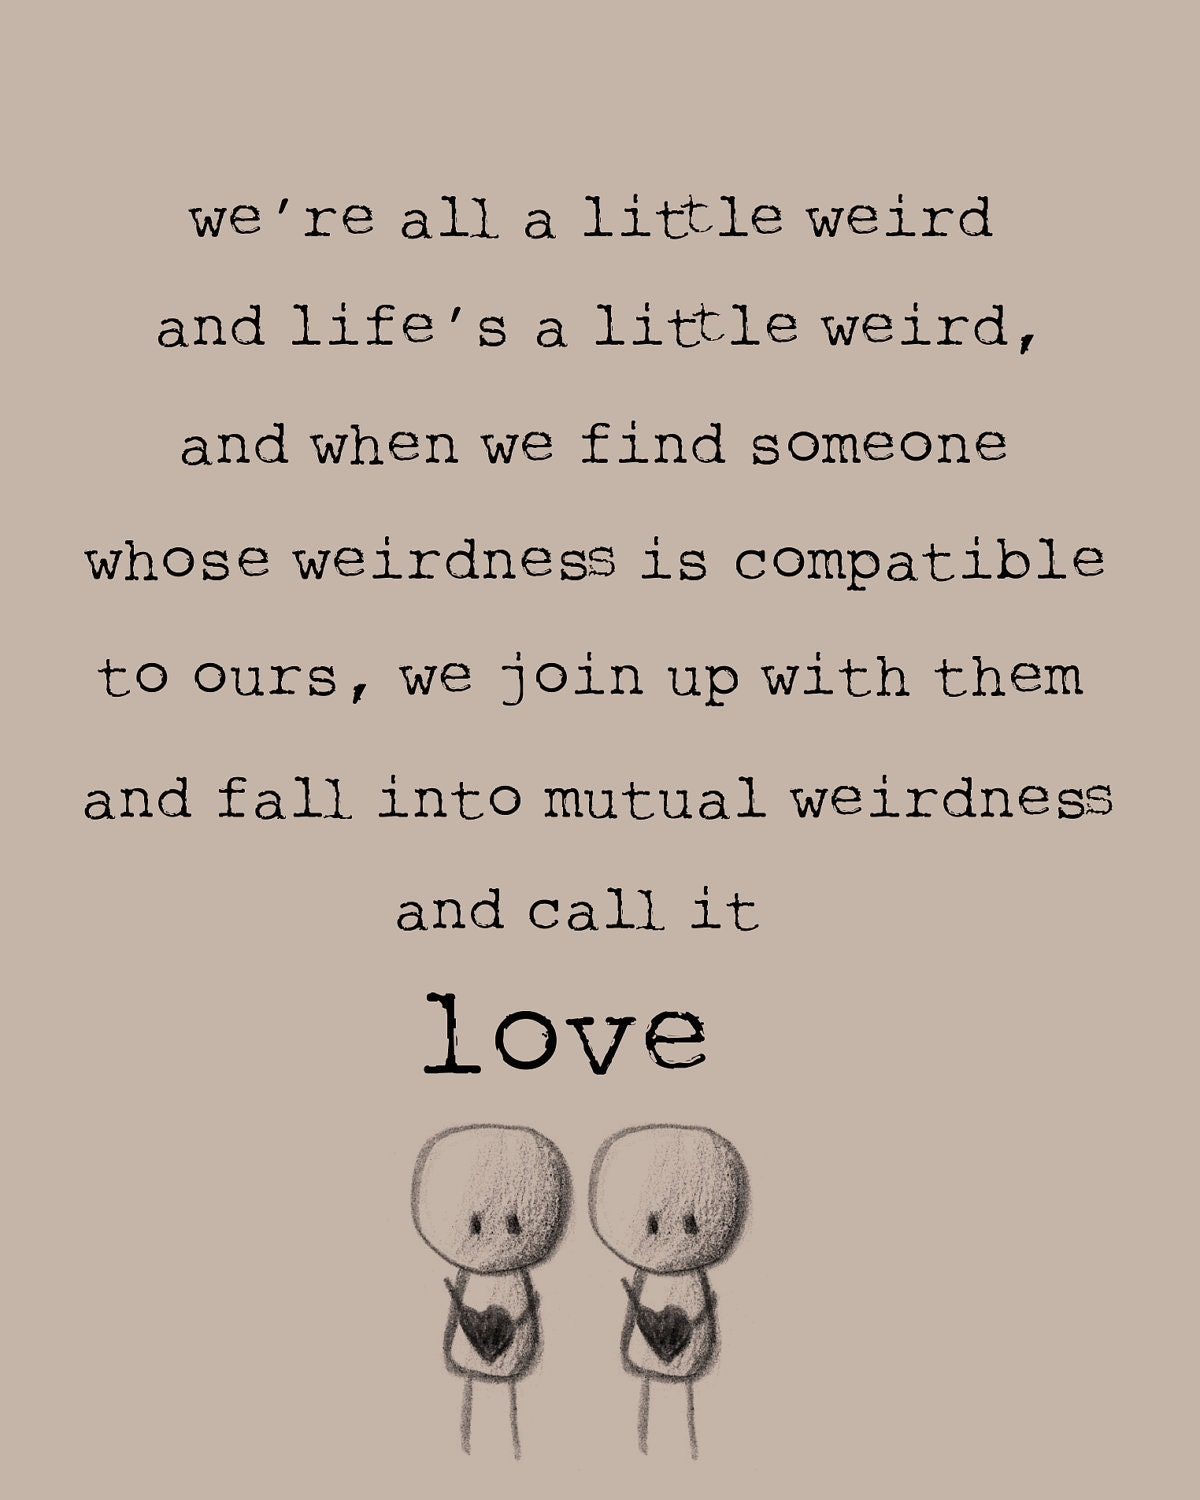 Dr Seuss Weird Love Quote Poster Pinamber Nicole Knoxirvin On Relationship Quotes  Pinterest